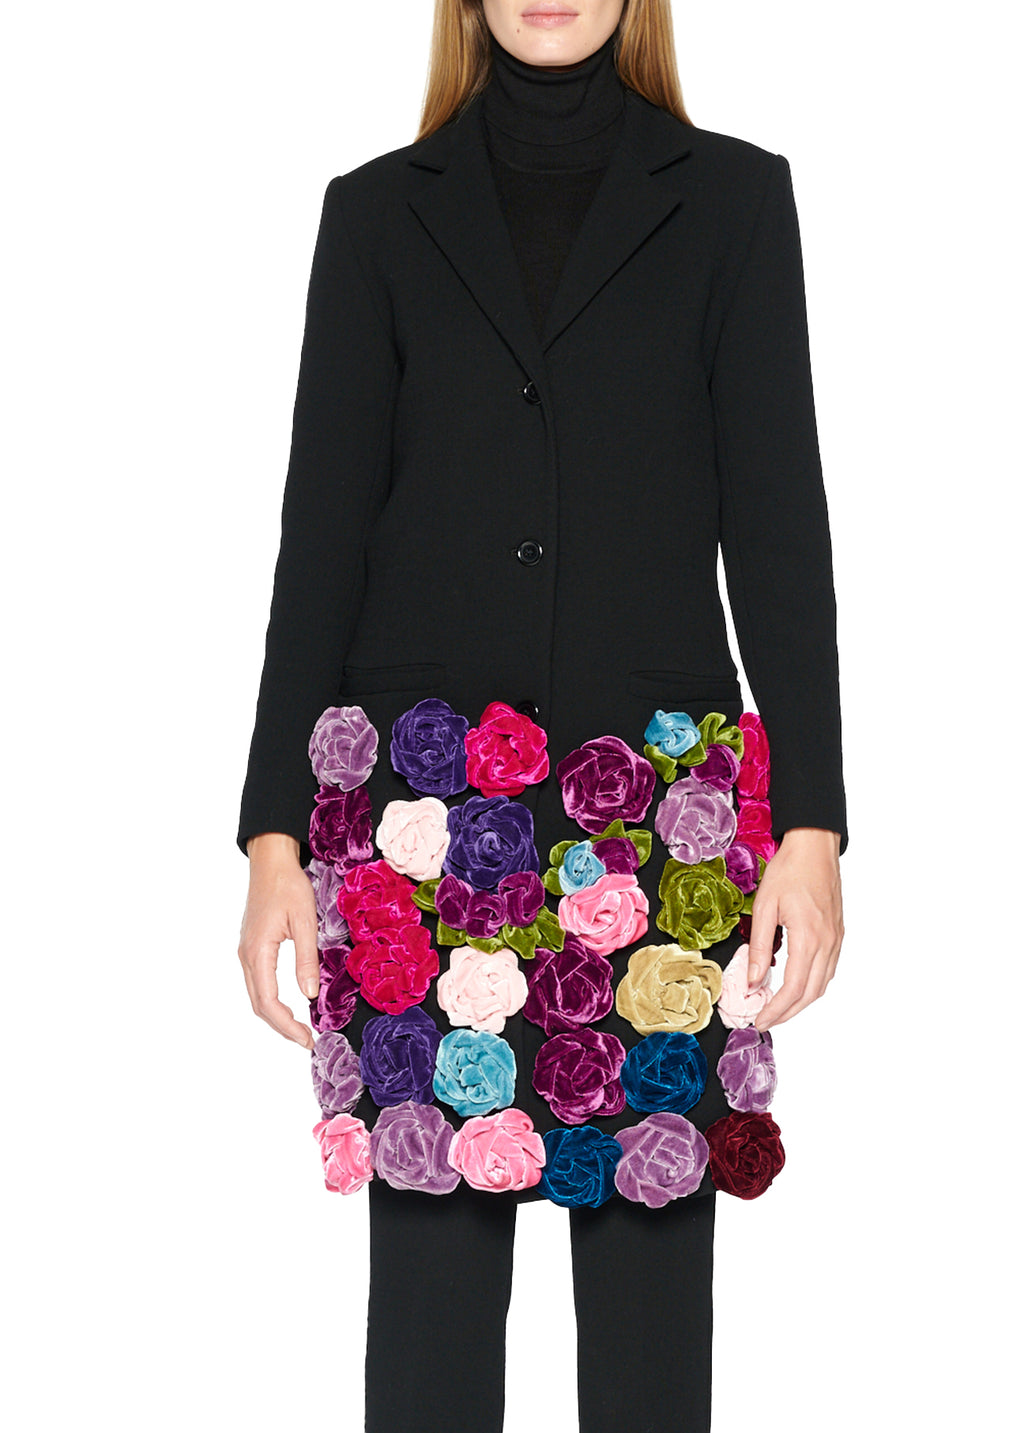 Velvet Roses Coat - Women's Jackets & Coats - Libertine